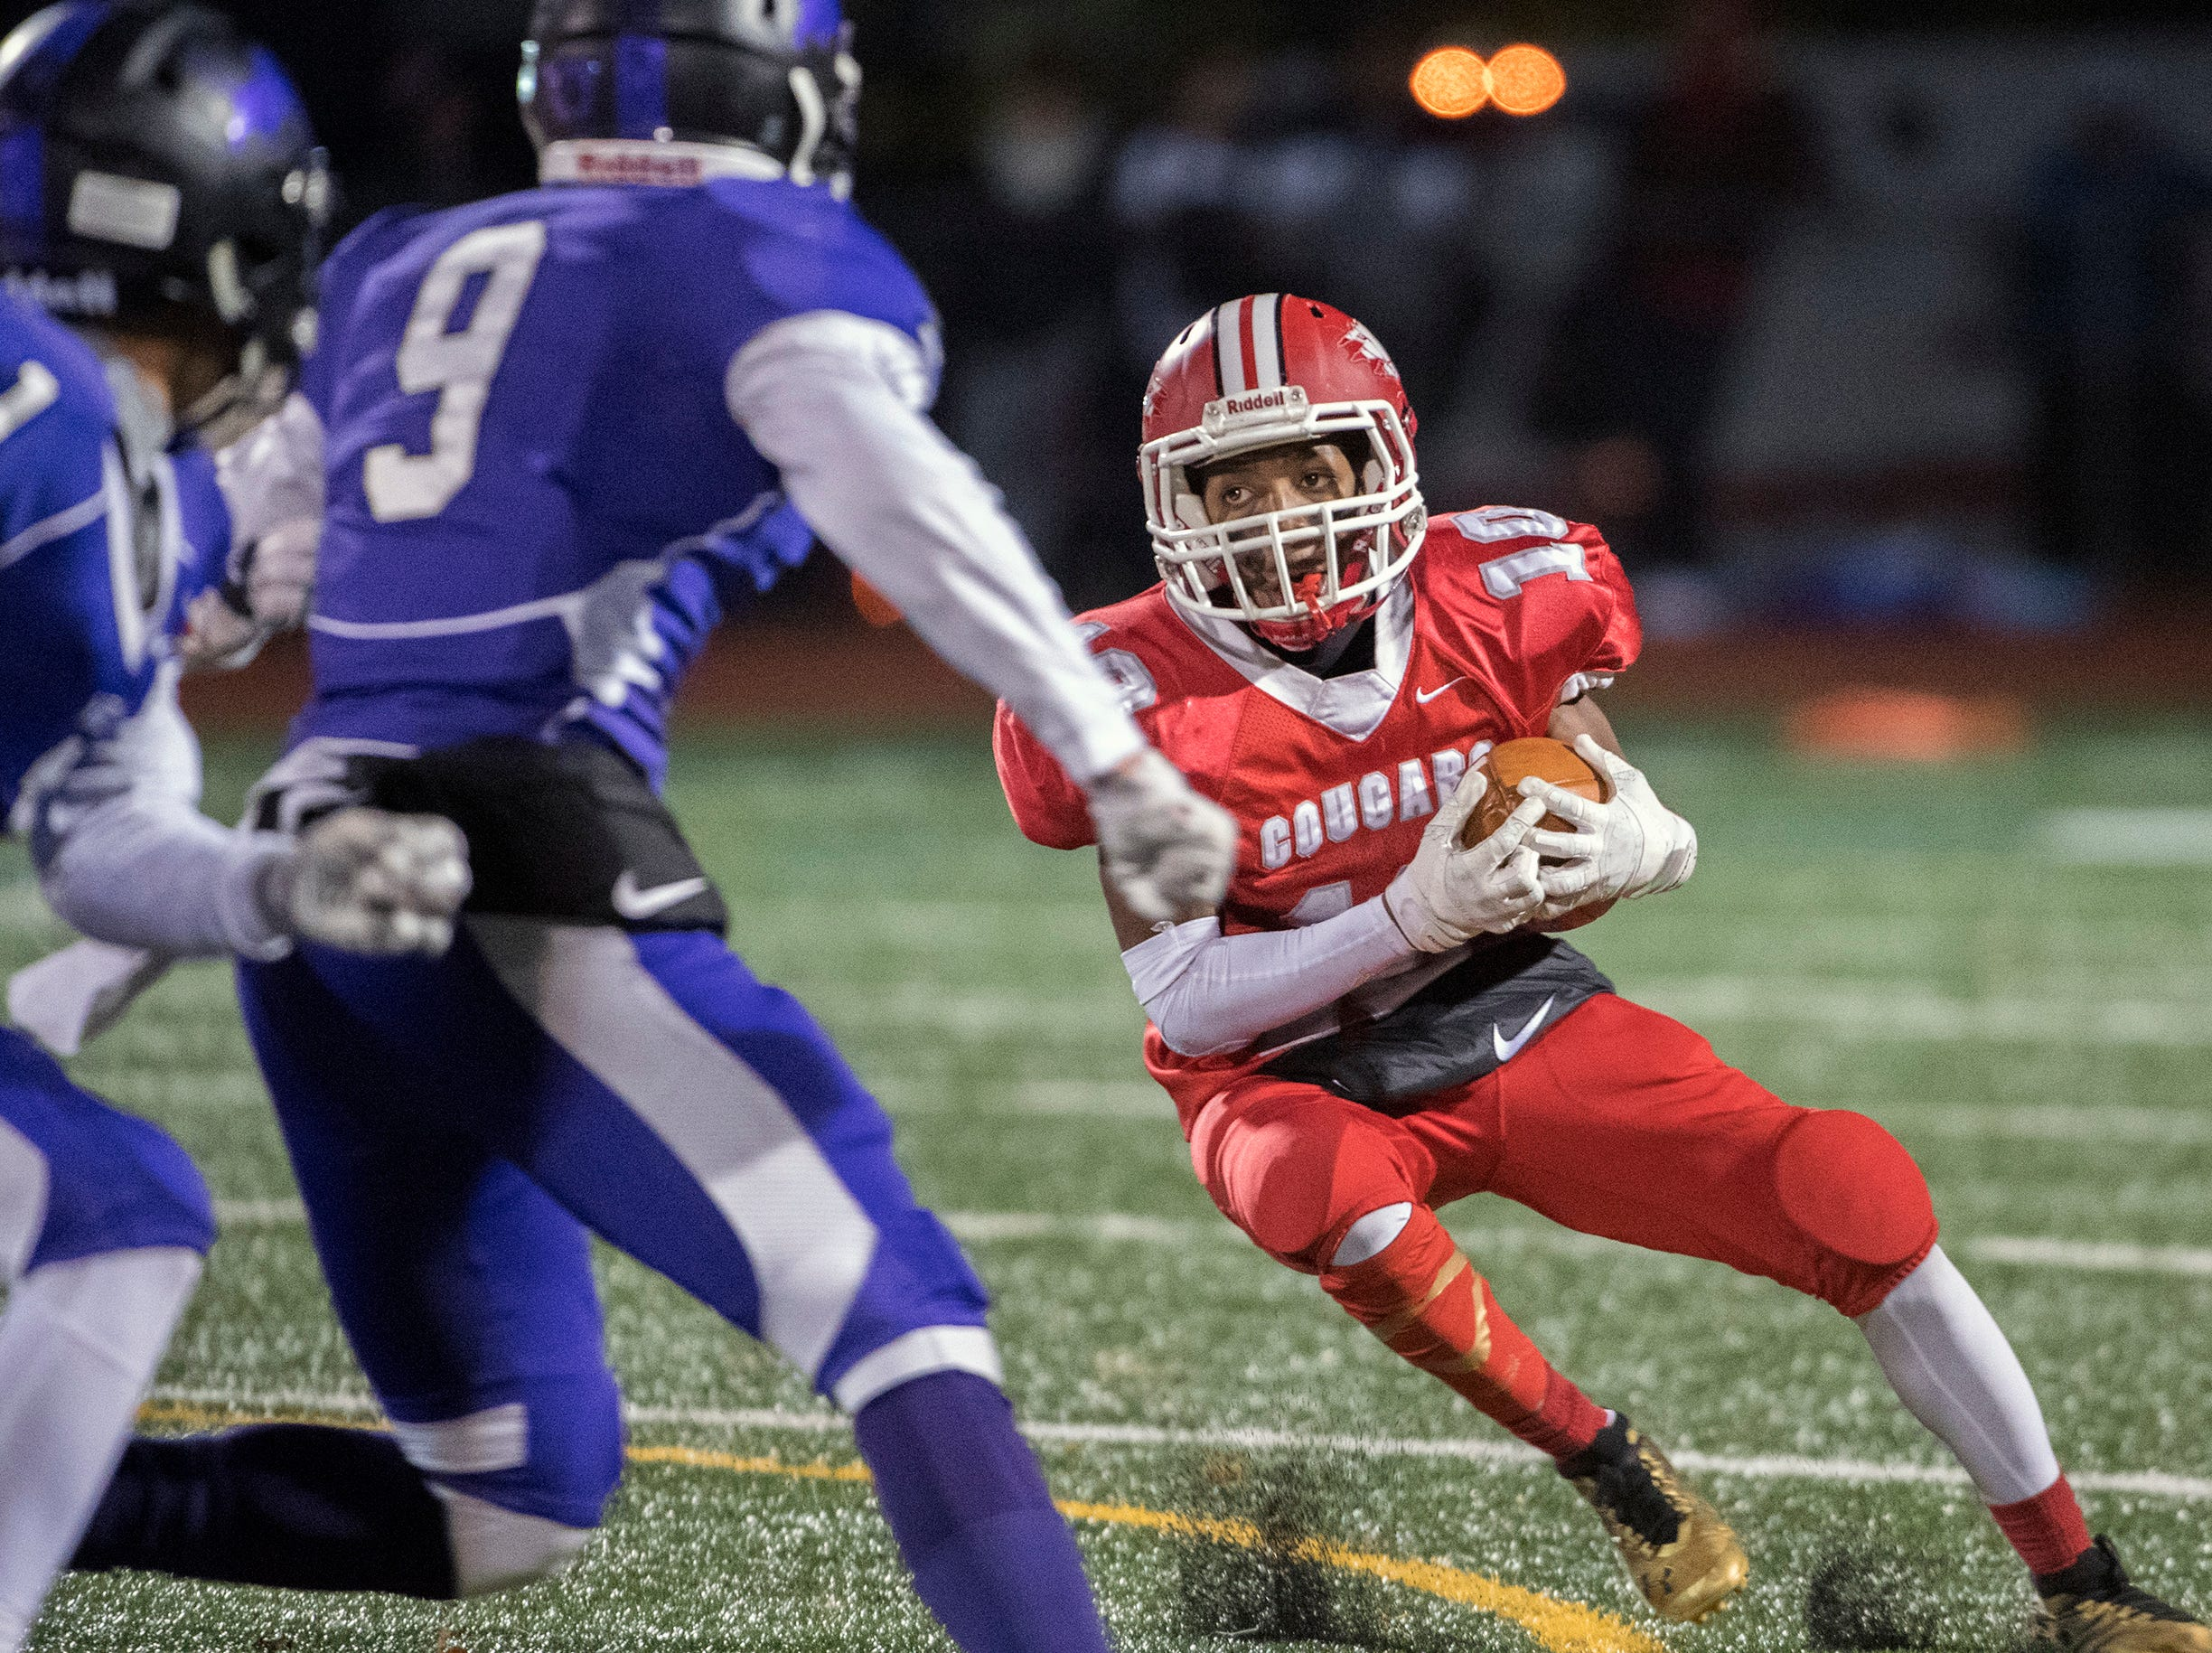 East's Isaac Jean-Baptiste (10) carries the ball during an annual East-West game Wednesday, Nov. 21, 2018 at Cherry Hill West High School in Cherry Hill, N.J. West won 22-7.